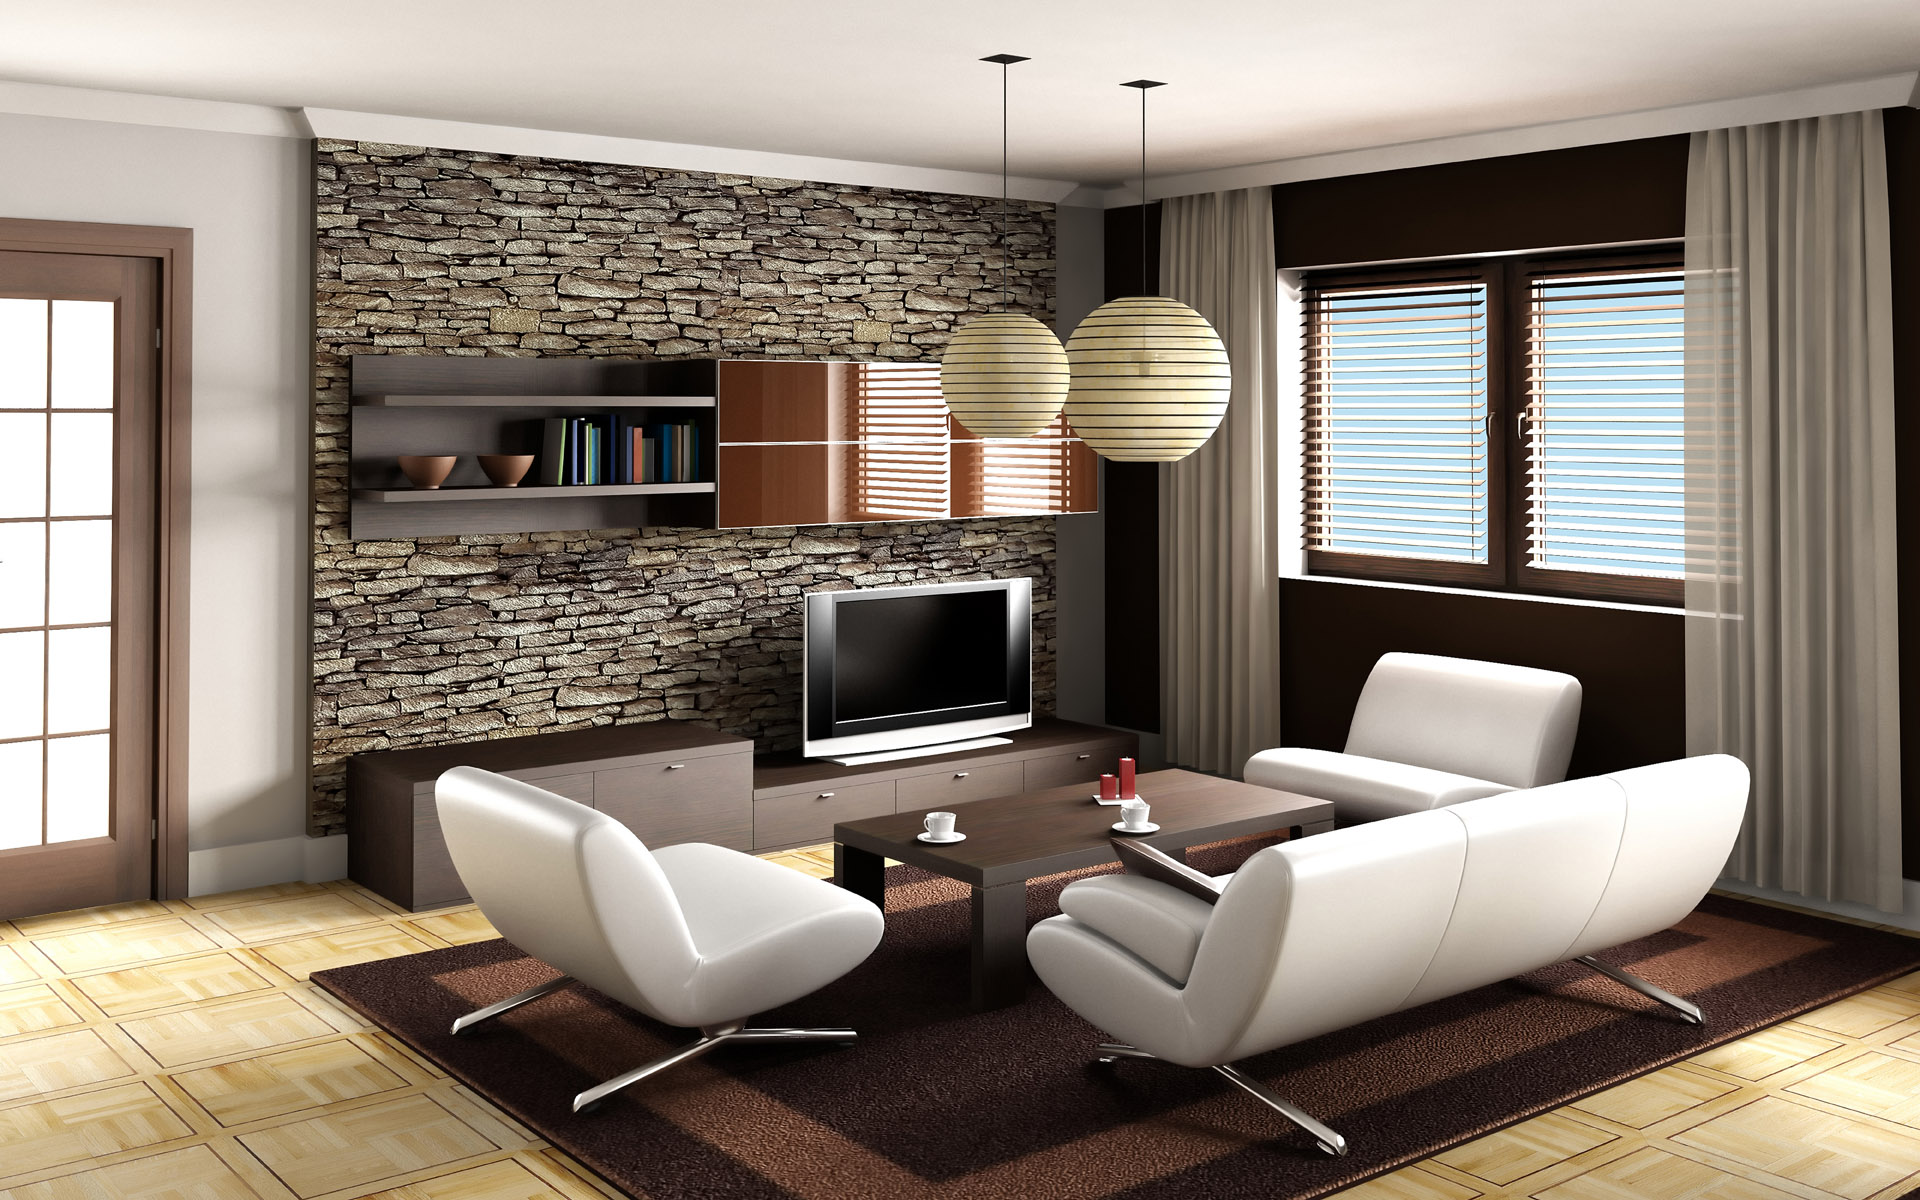 7 tips to decorate your living room worthily for How decorate family room